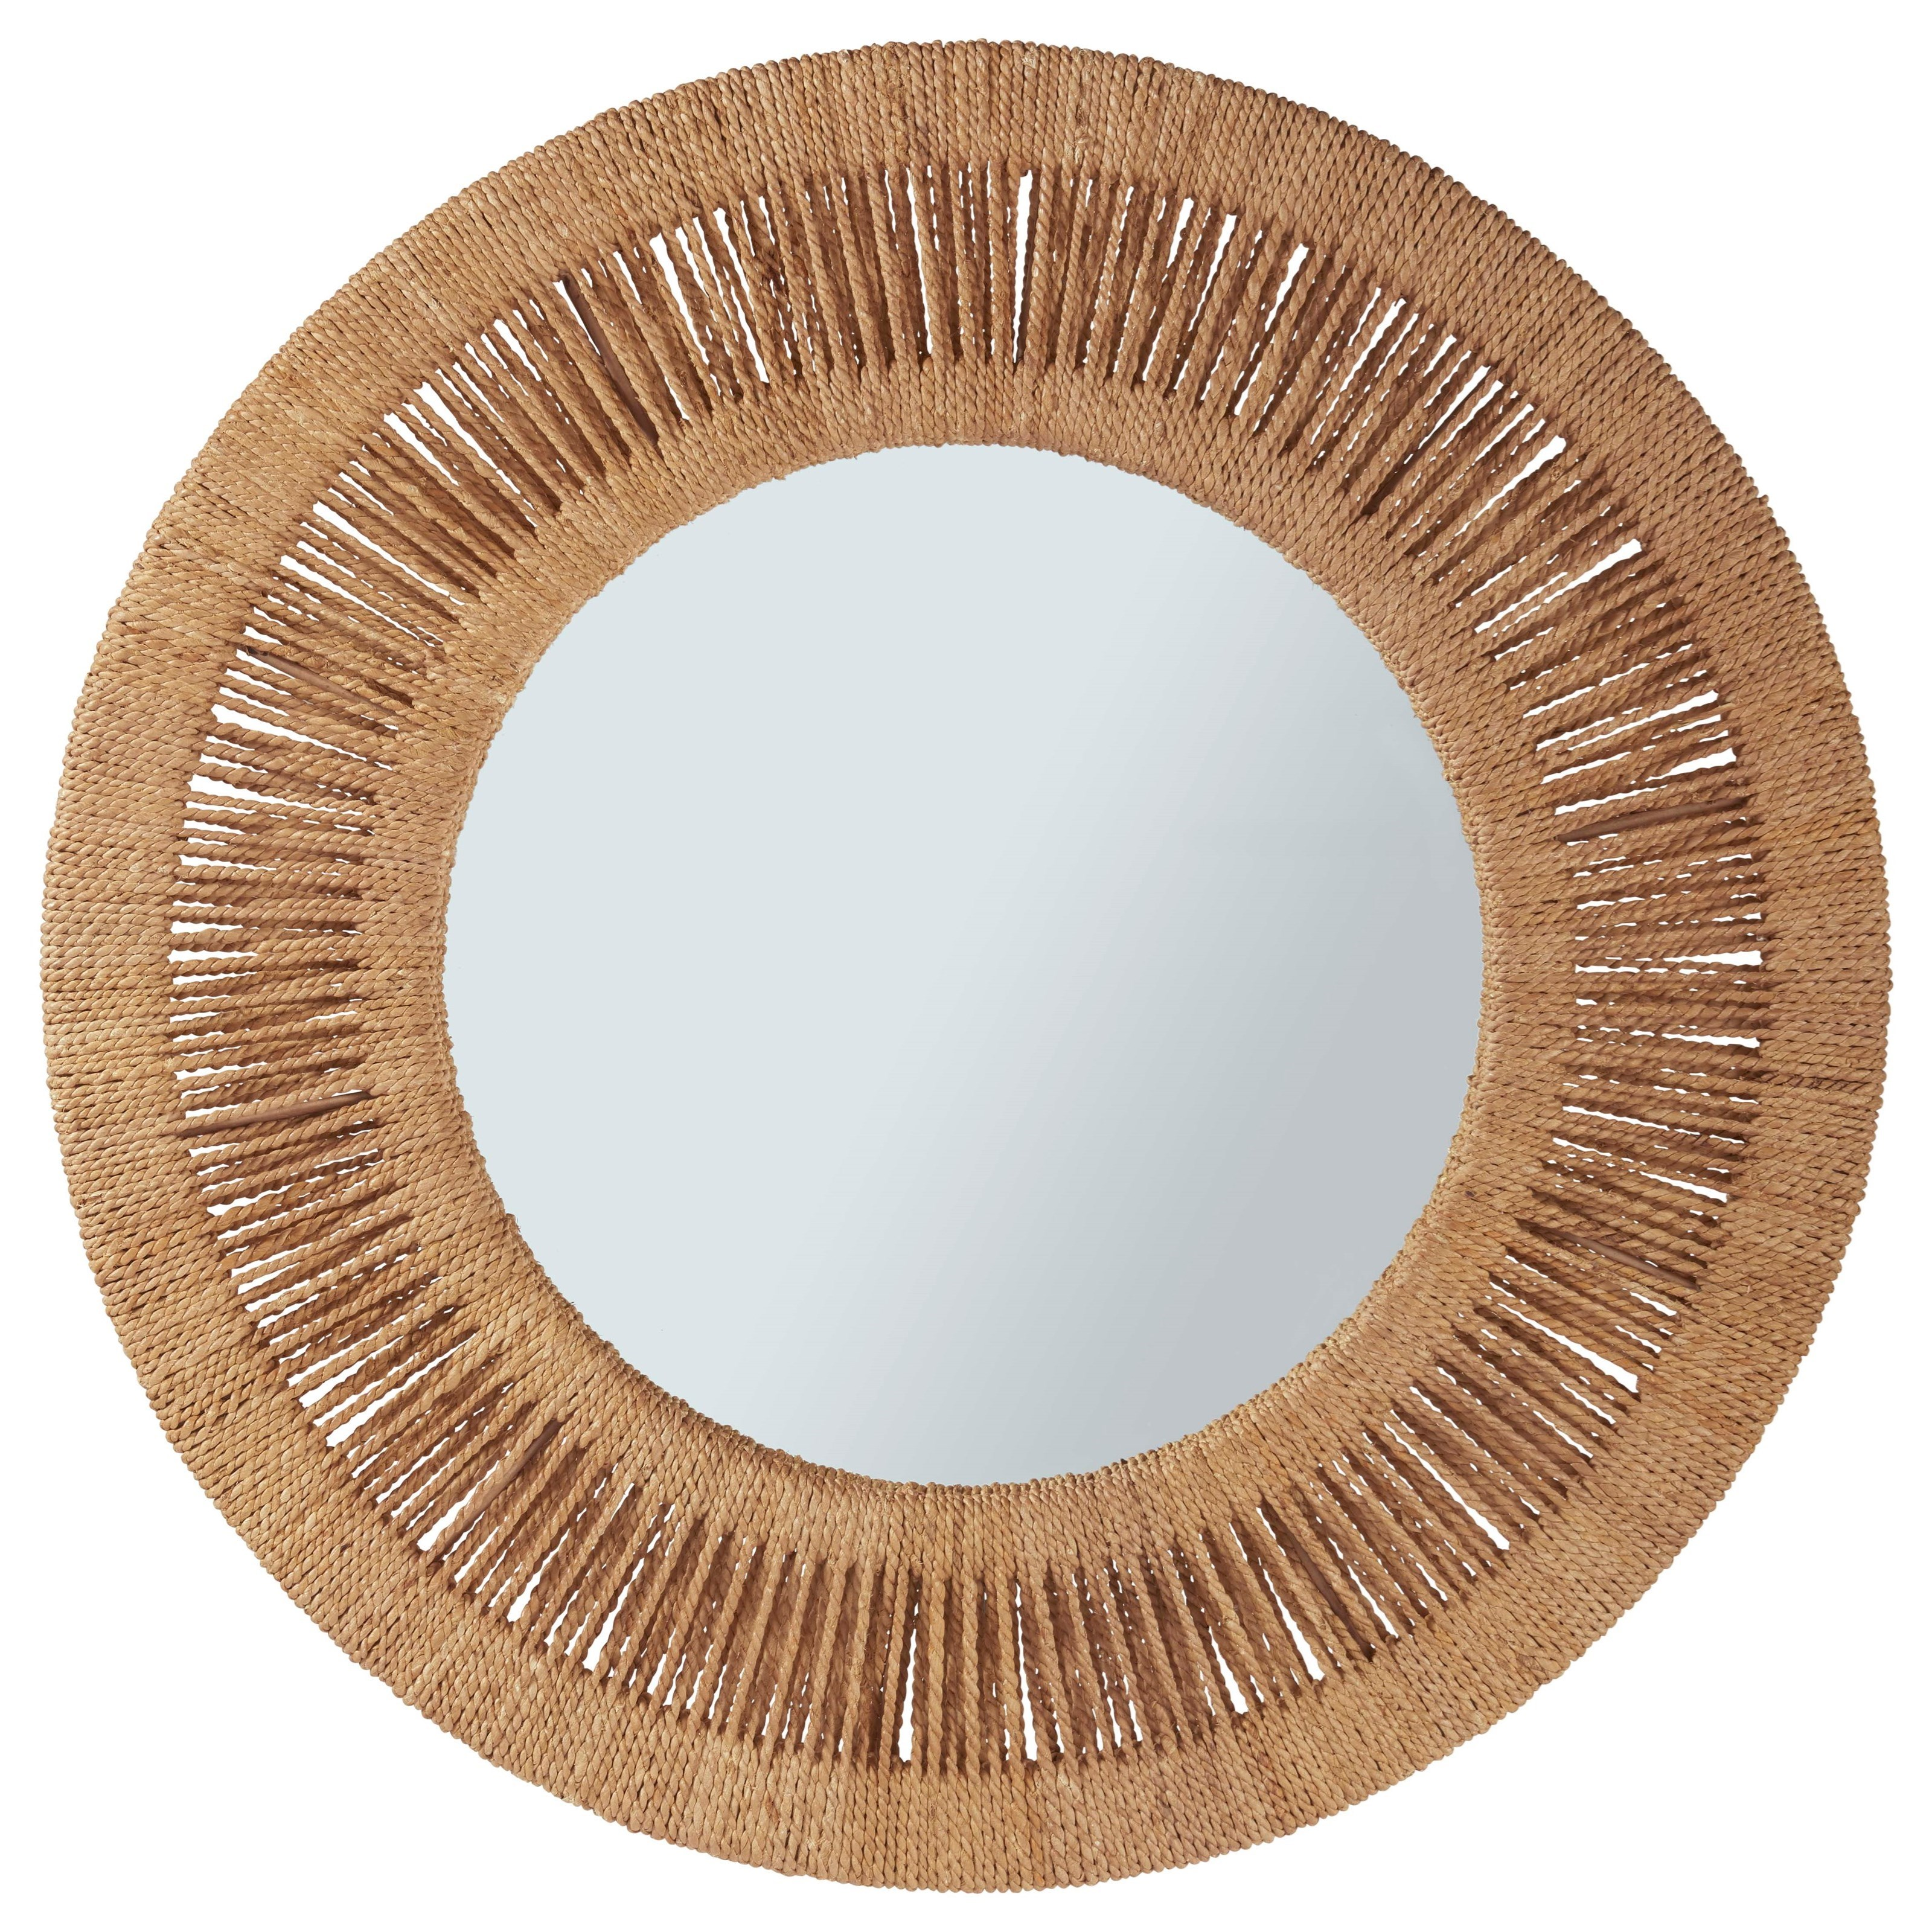 Coastal Living Home - Escape Mirror by Universal at HomeWorld Furniture